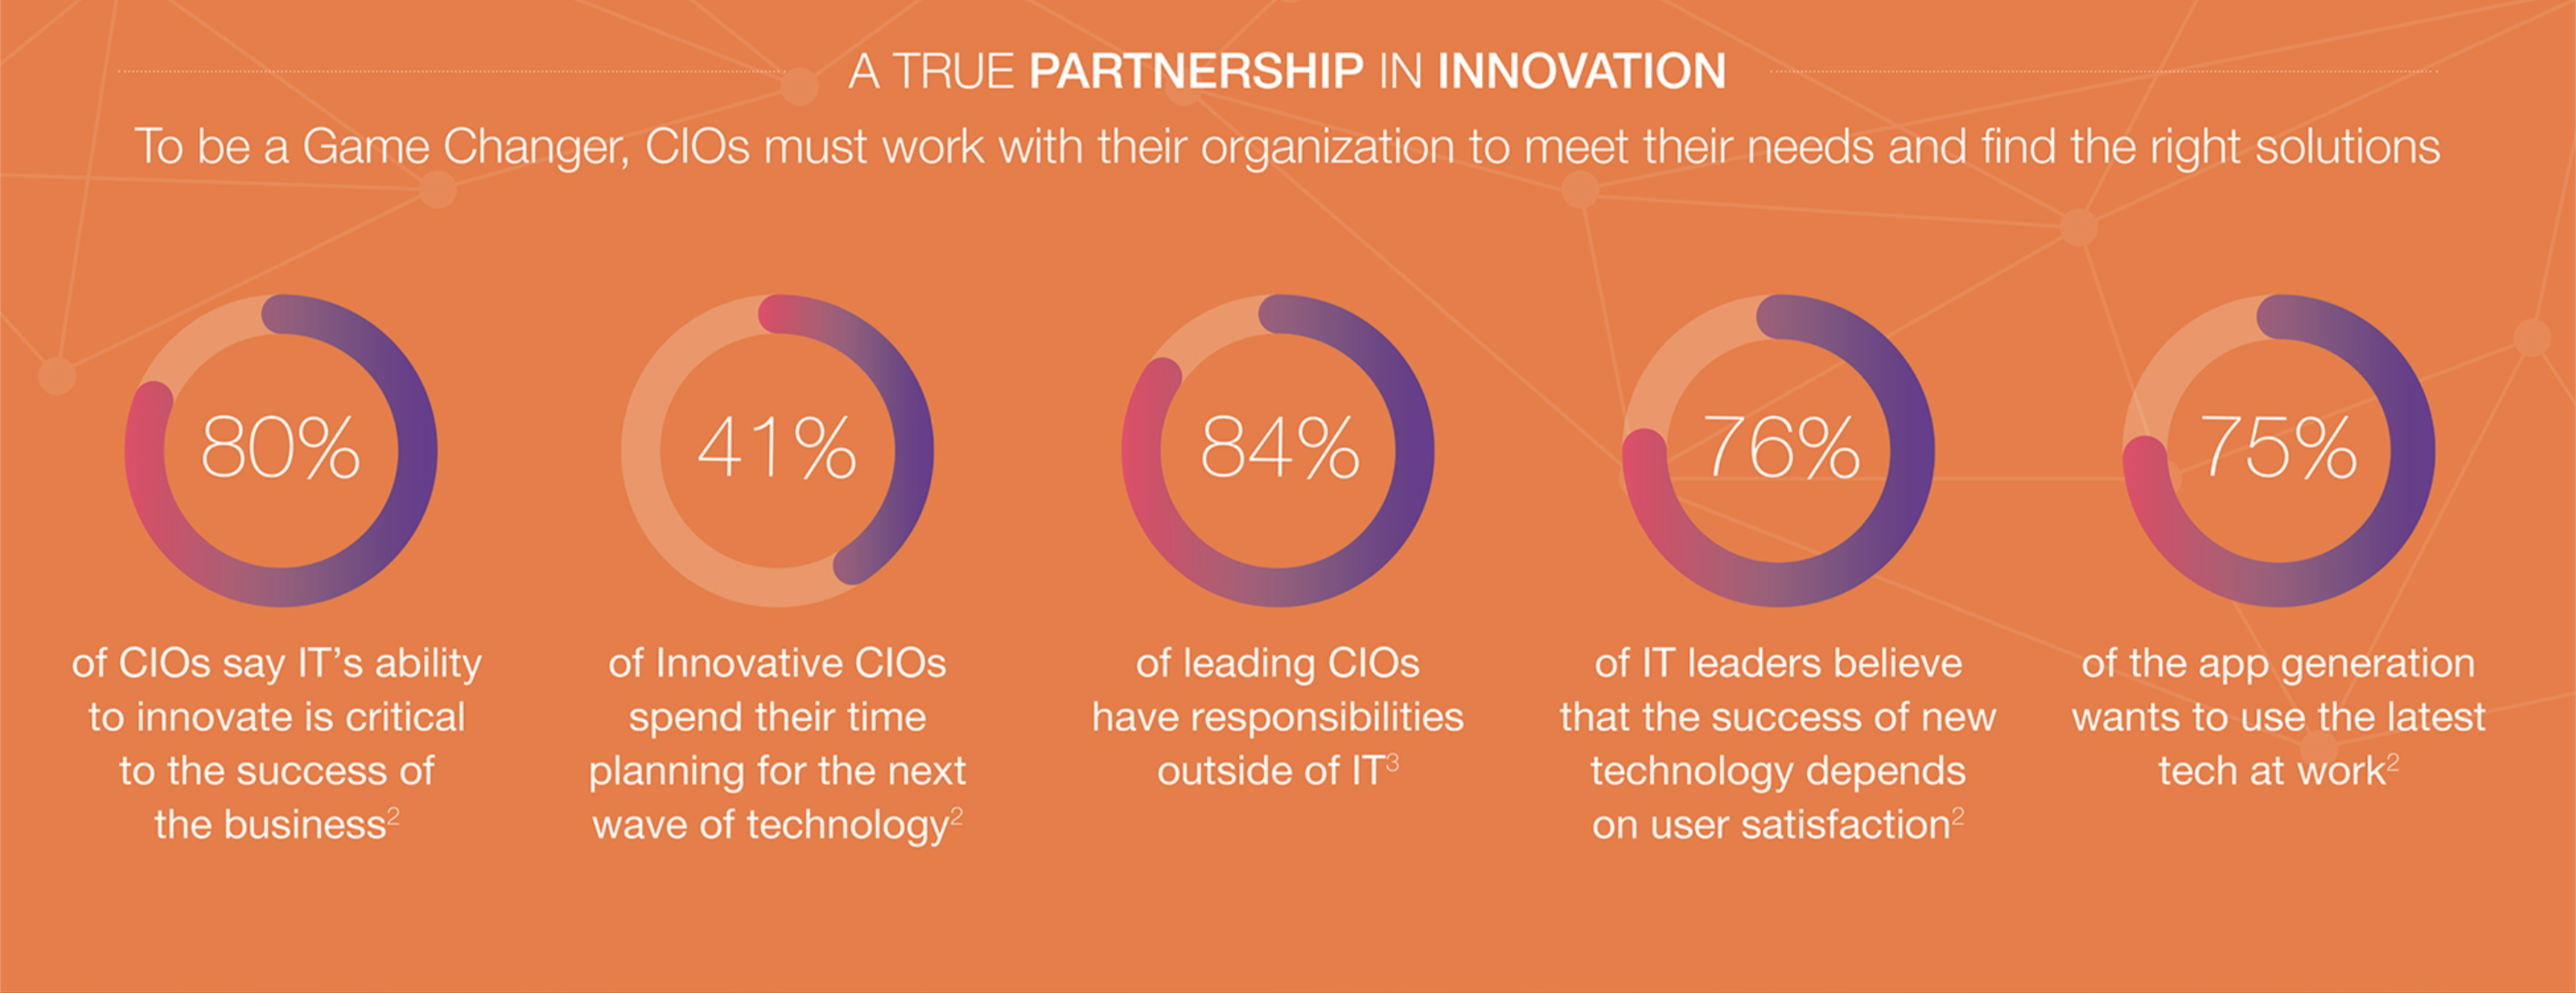 A true partnership in innovation. To be a game changer,CIOs must work with their organizations to meet their needs and find the right solutions